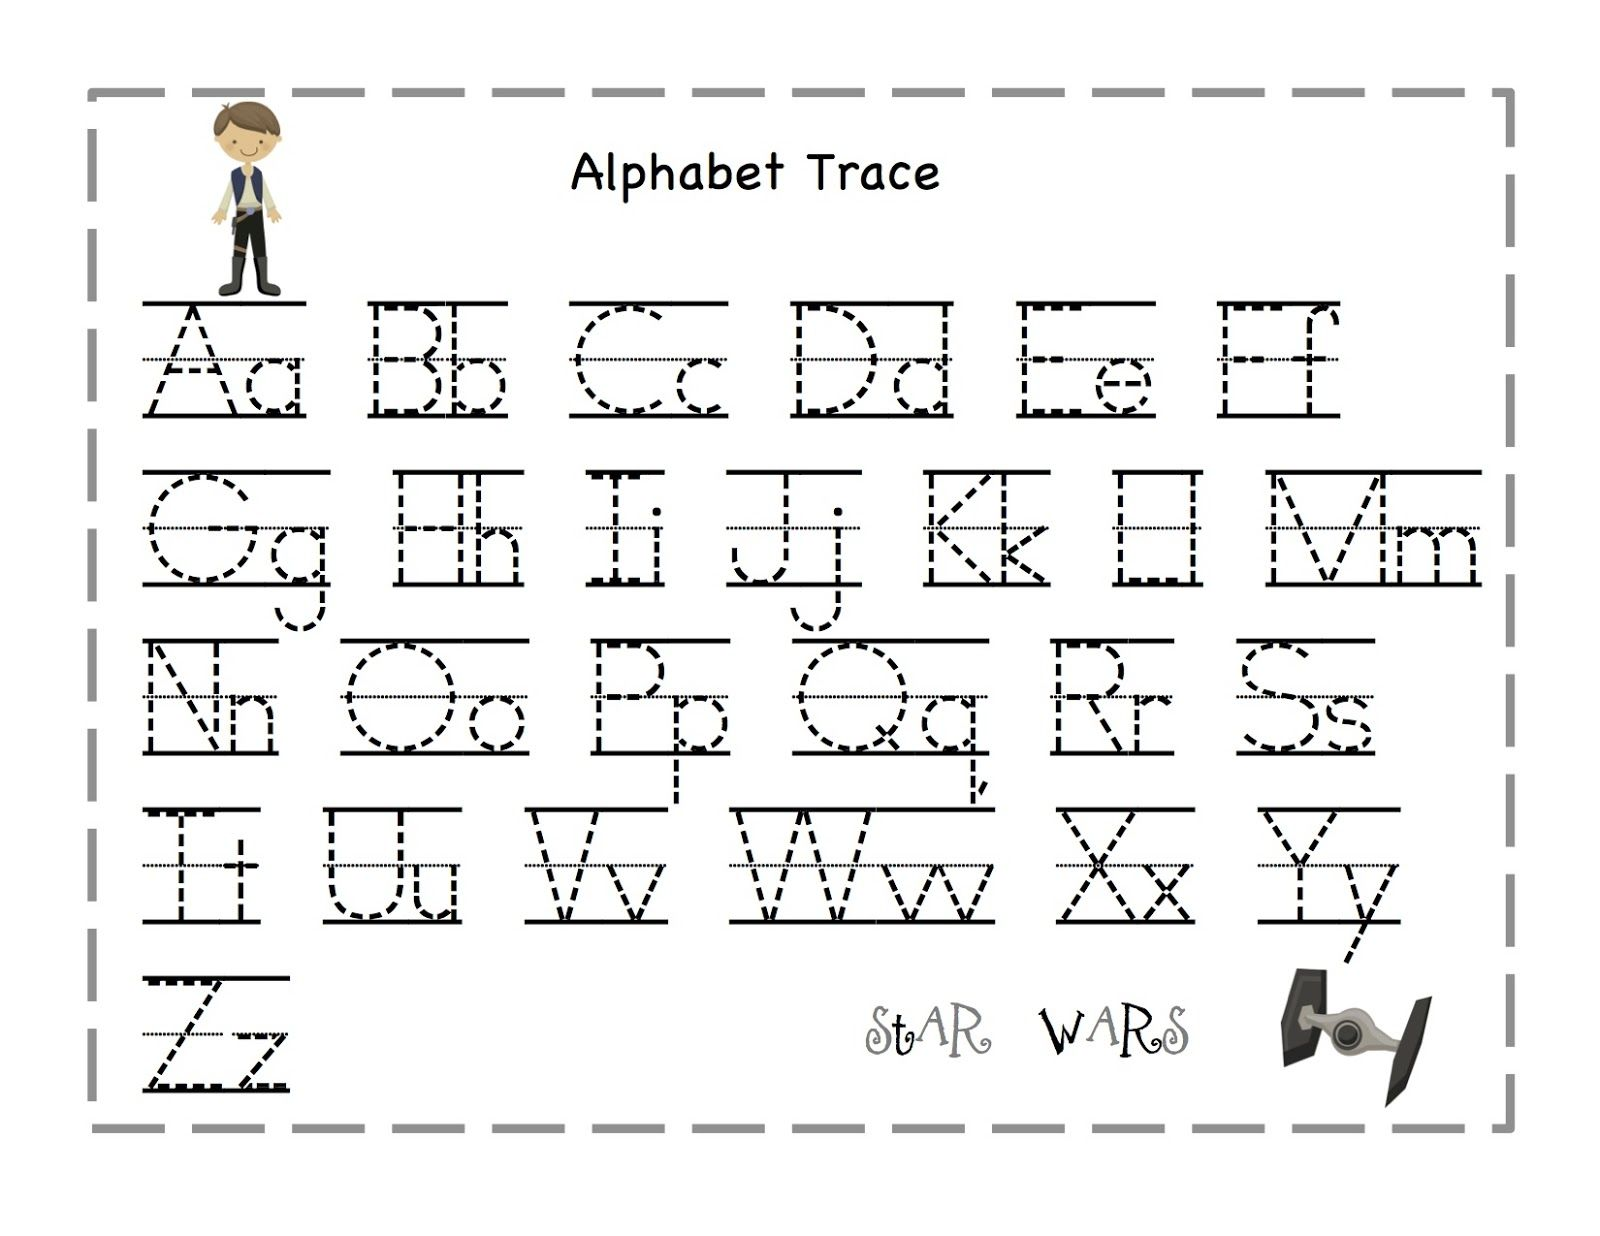 Worksheet Trace The Alphabet Printable free printable alphabet letter tracing worksheets angeline worksheets